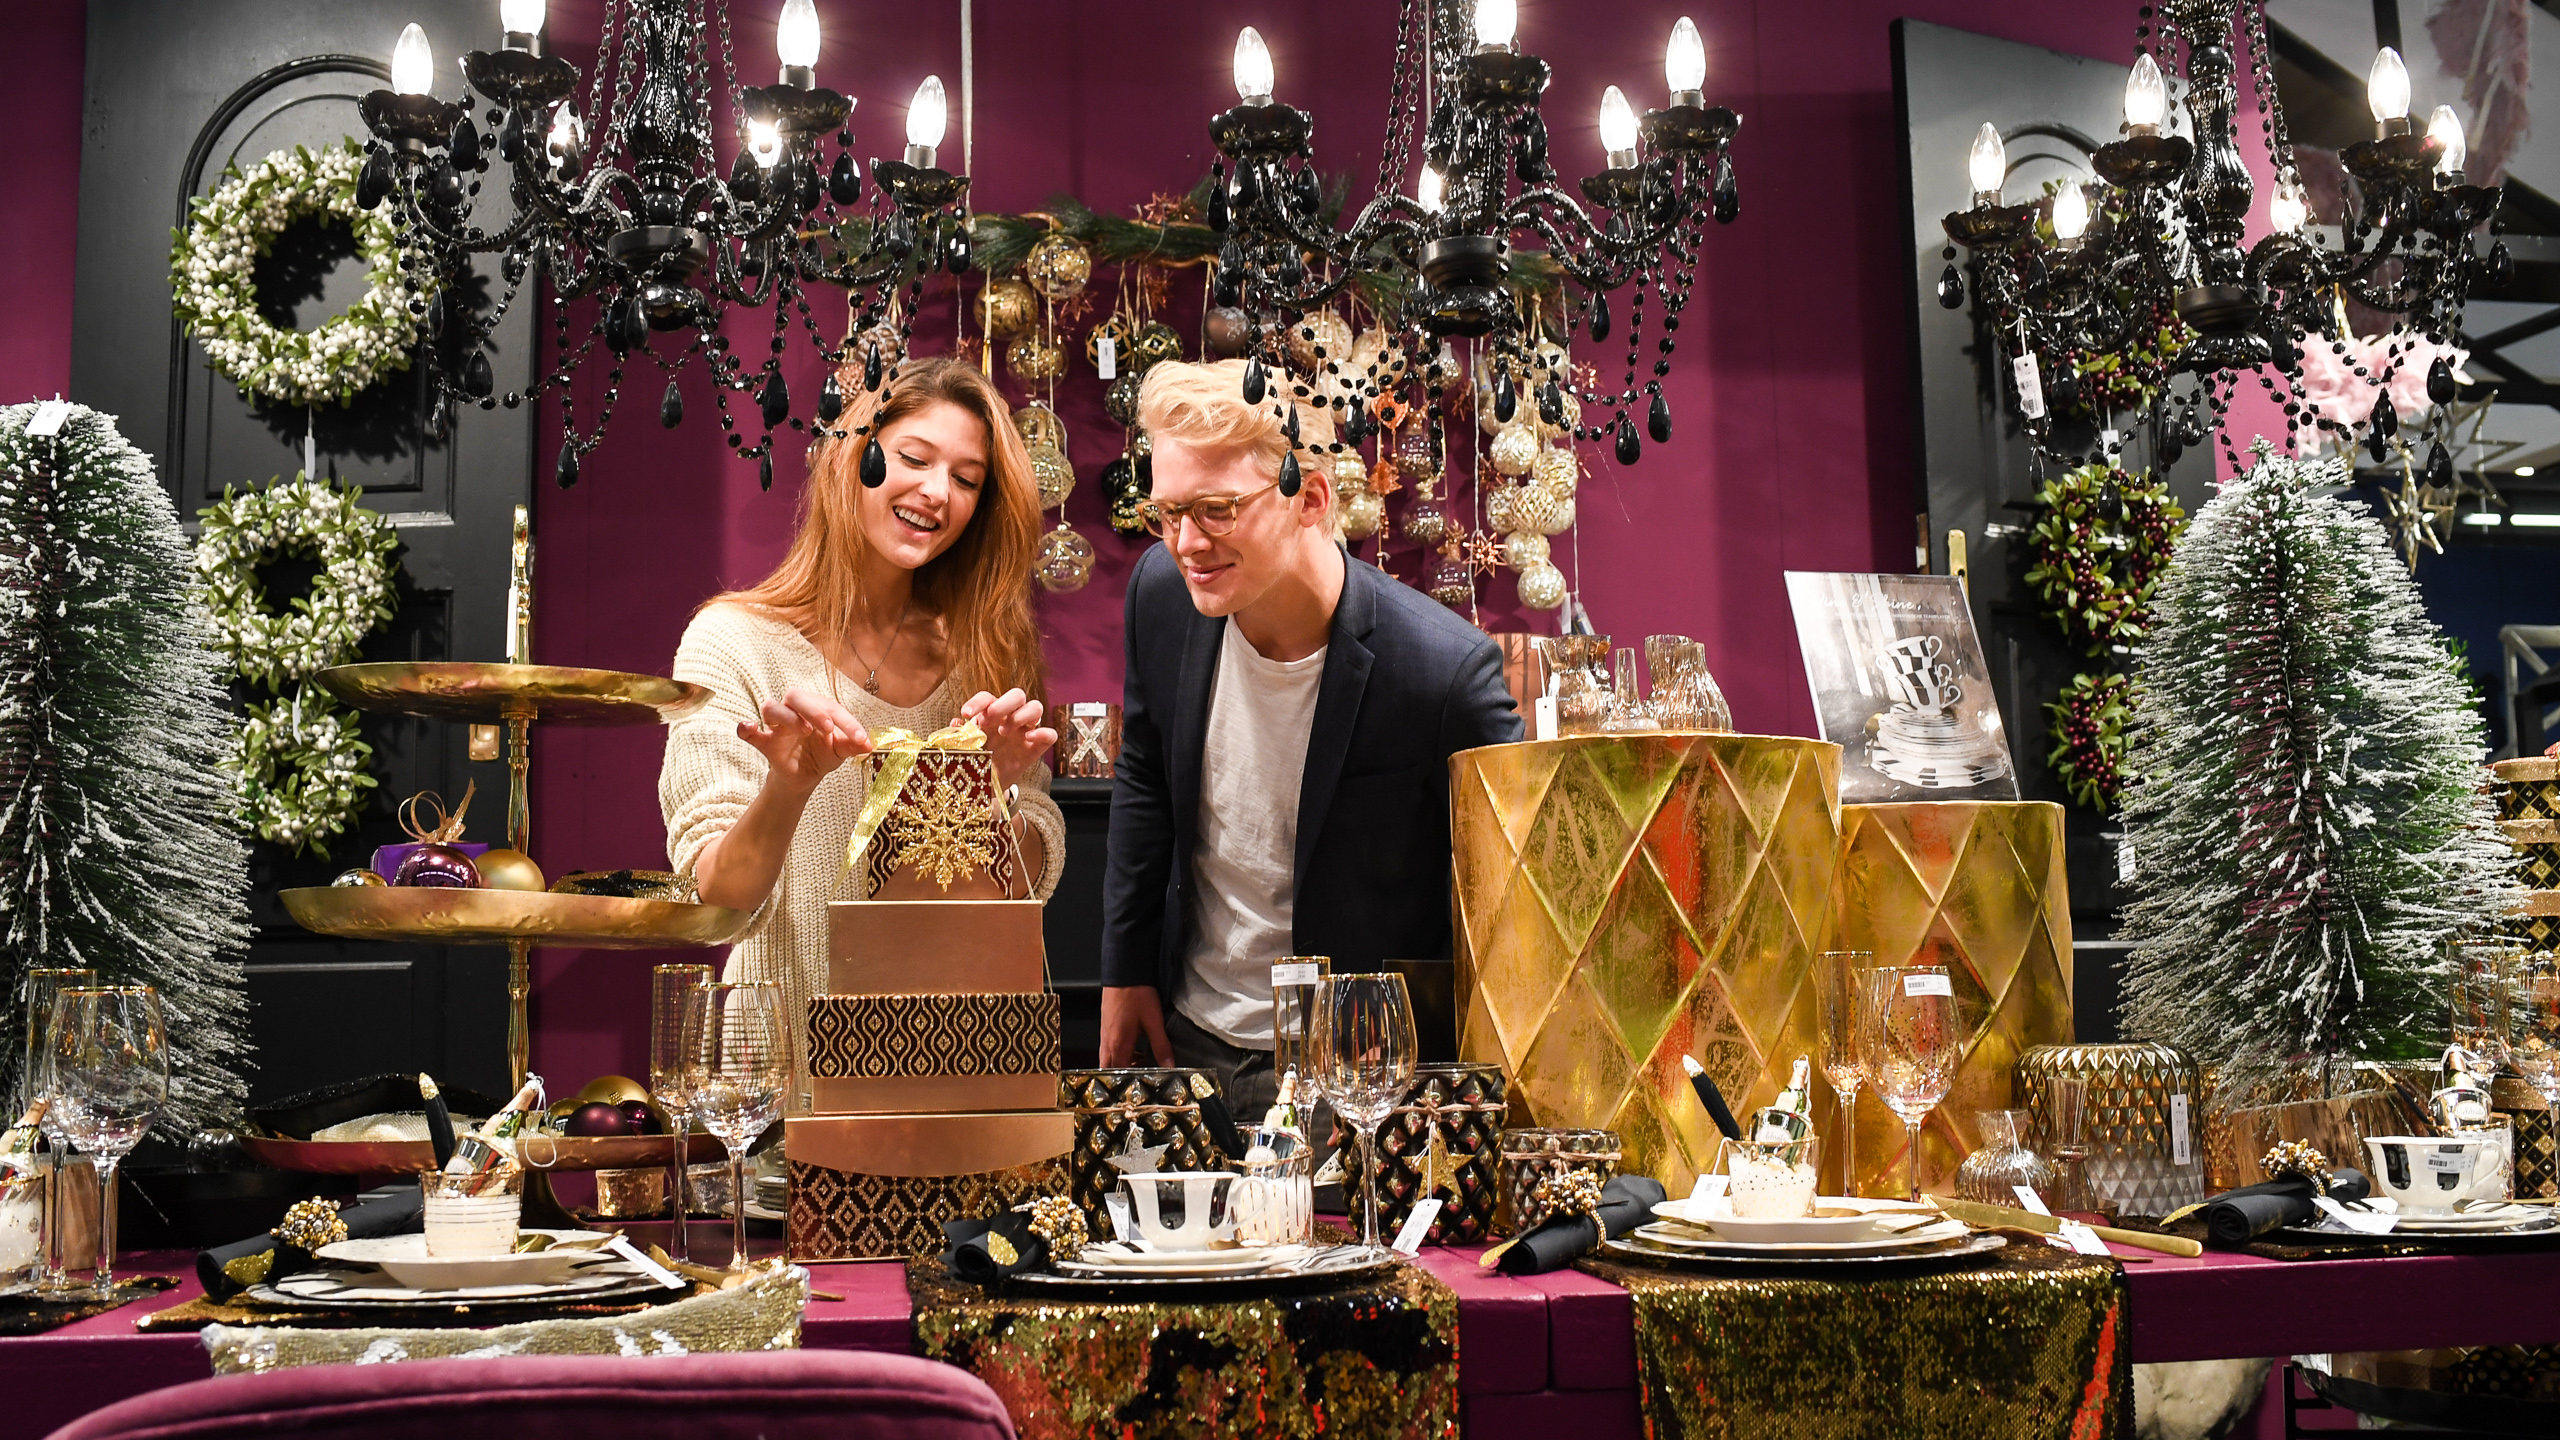 Tendence is the place where buyers can find the unusual ideas and must-haves of the season.